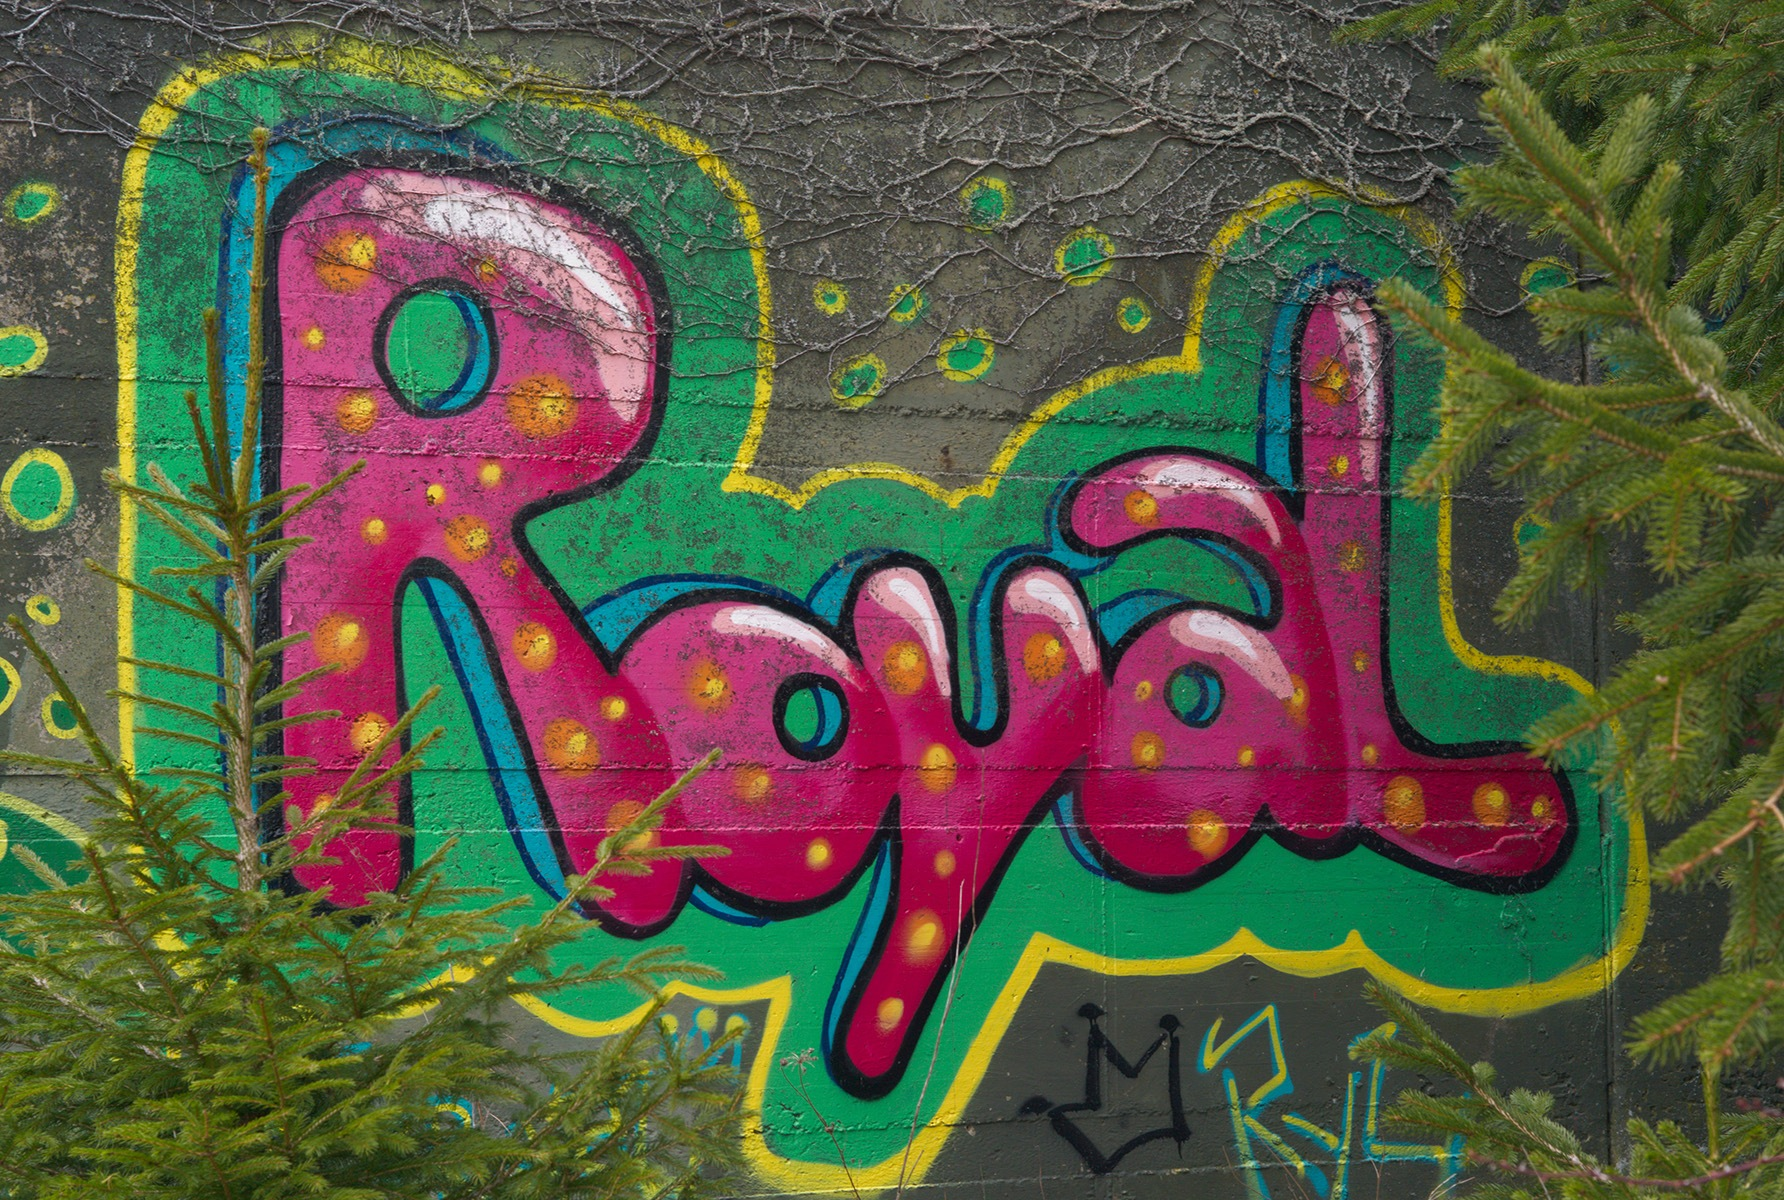 Royaltrees by Funktrainer